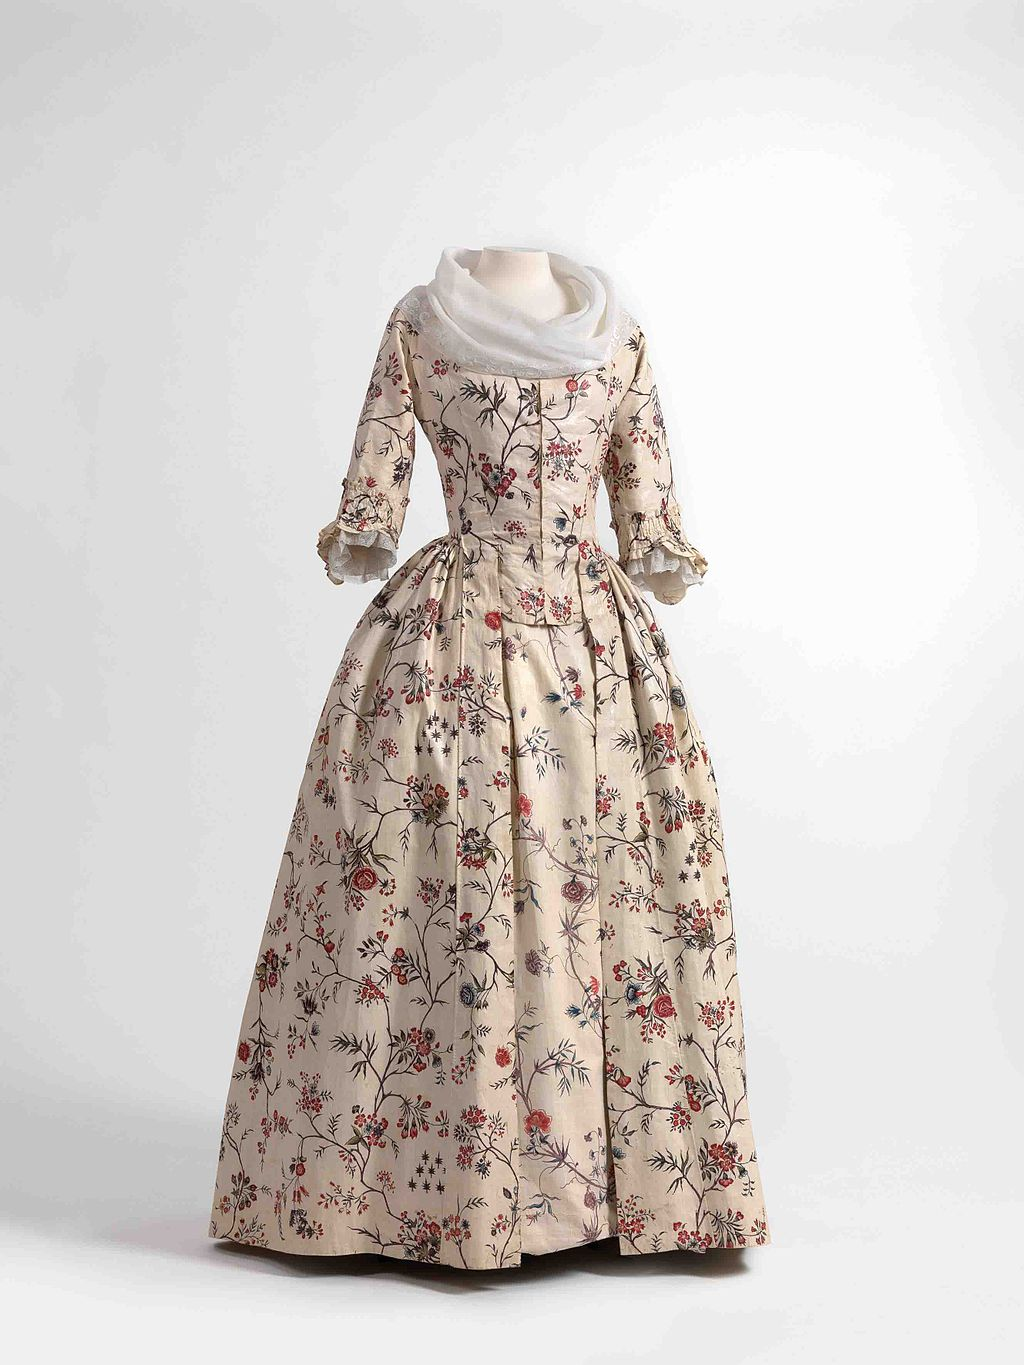 Dress (robe à l'anglaise) and skirts in chintz, ca. 1770-1790, shawl (fichu) in embroidered batiste, 1770-1800. Jacoba de Jonge Collection in MoMu - Fashion Museum Province of Antwerp, www.momu.be / Photo by Hugo Maertens, Bruges, CC BY-SA 3.0 <https://creativecommons.org/licenses/by-sa/3.0>, via Wikimedia Commons